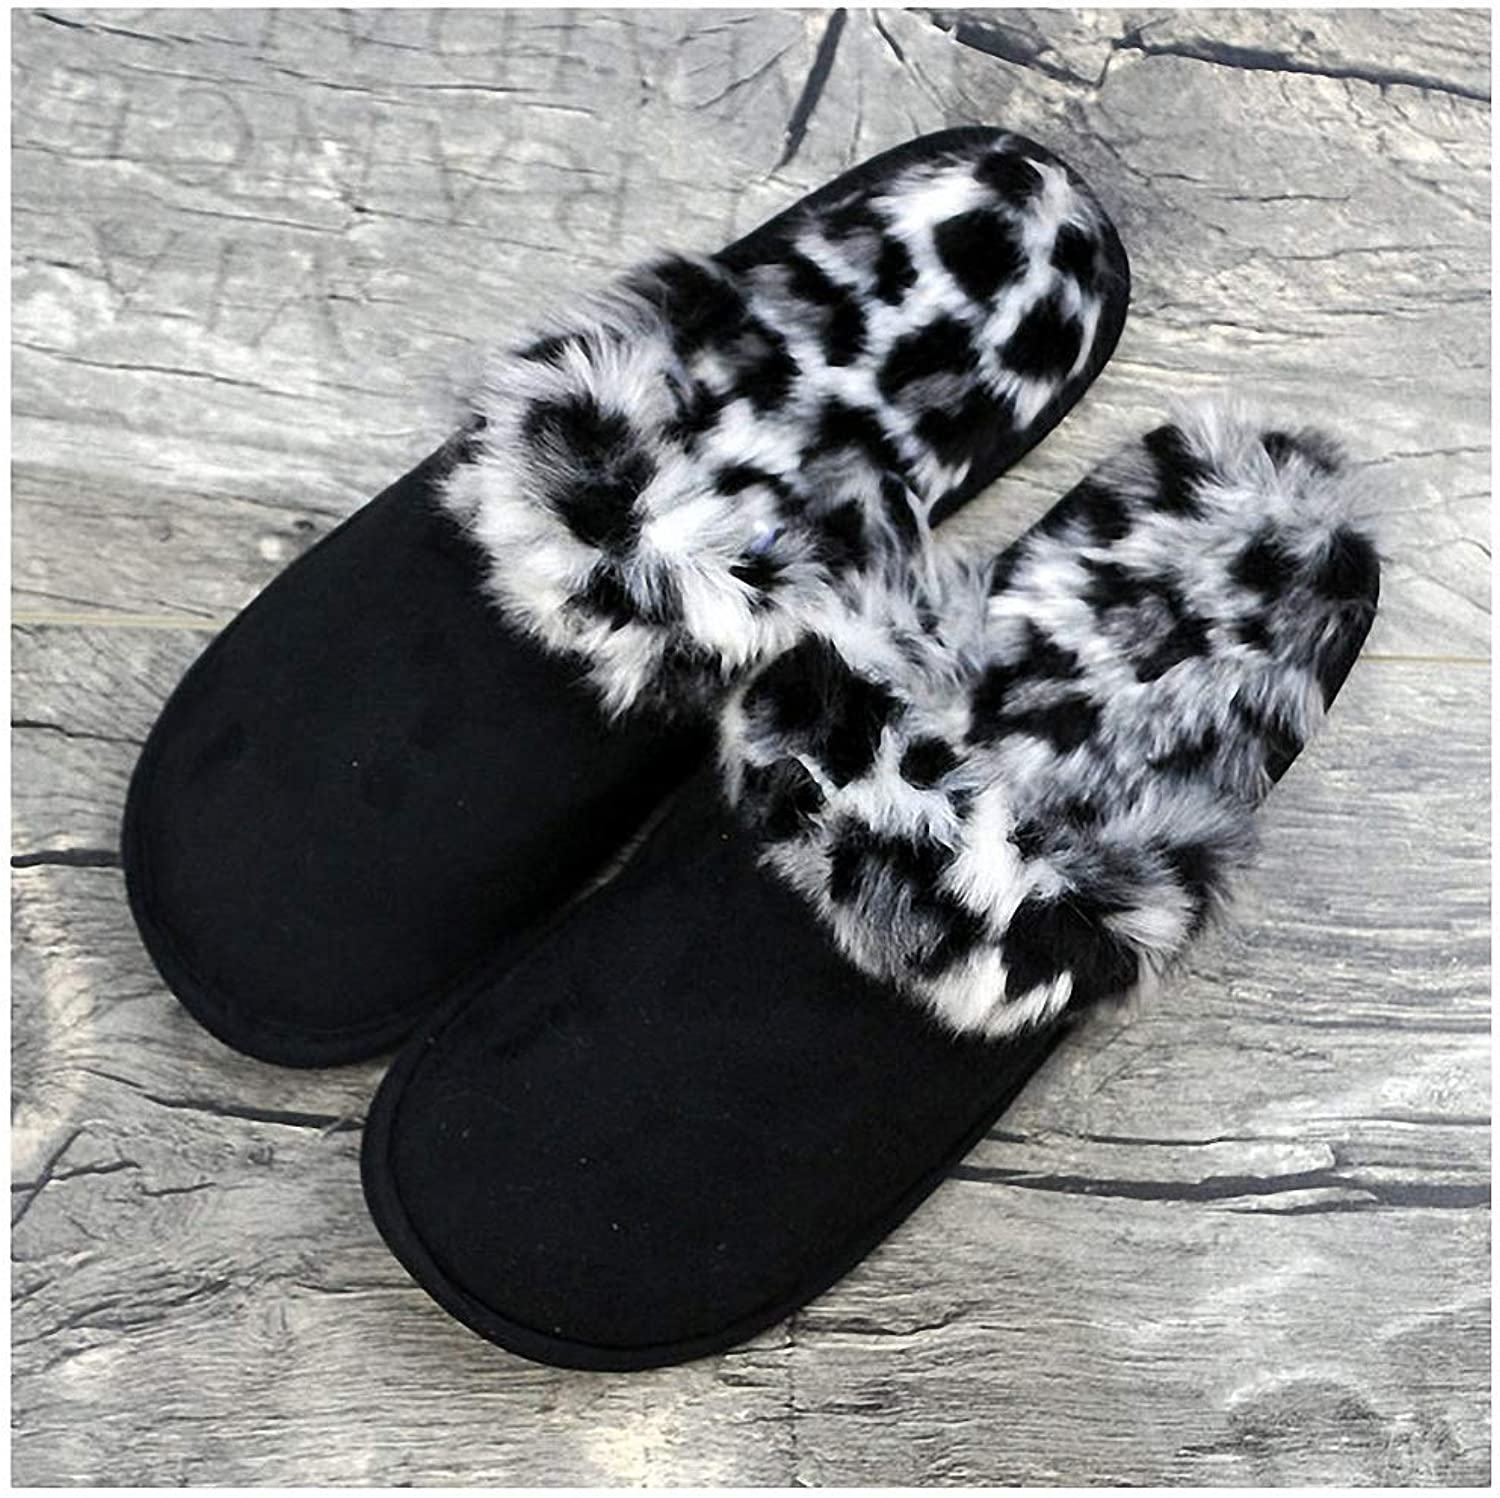 Womens Slippers Large Size Couples House Slippers for Men Women Winter Warm Faux Suede Fur Indoor Furry Home shoes Leopard Print Bedroom Slipper Black Leopard Print 15